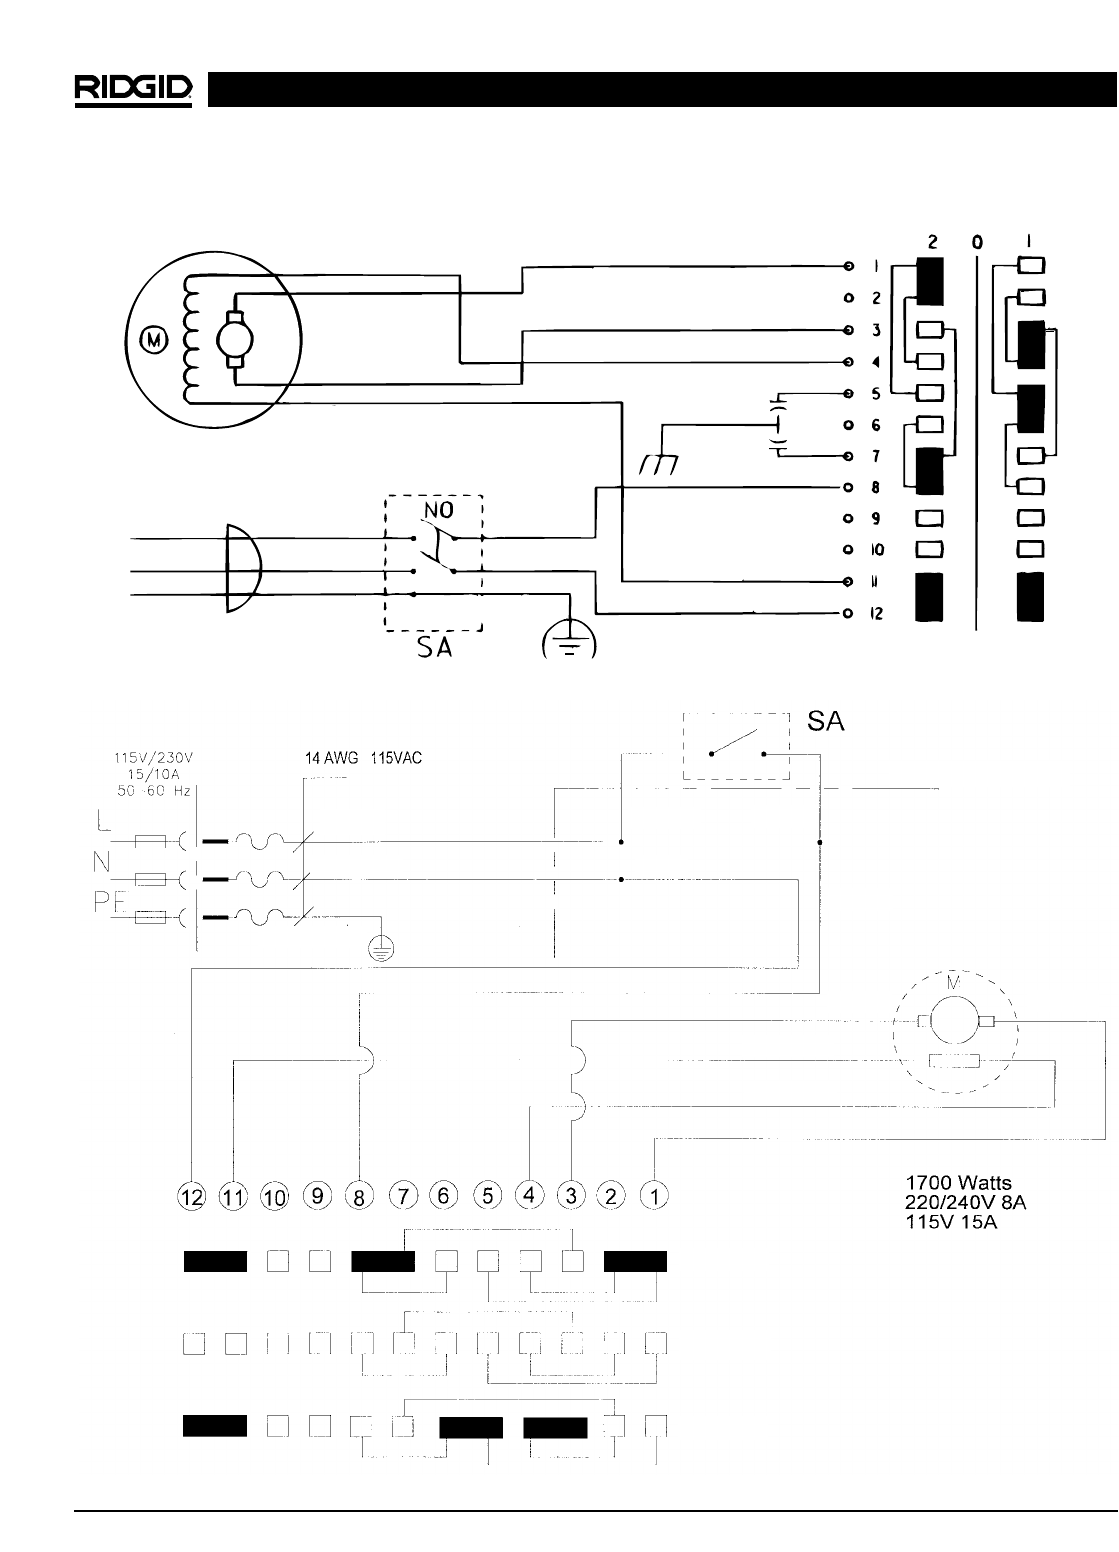 68b109bc 3c1f 445d 9958 08de9edaa37c bg14 page 20 of ridgid sewing machine 300 user guide manualsonline com ridgid r4513 wiring diagram at reclaimingppi.co